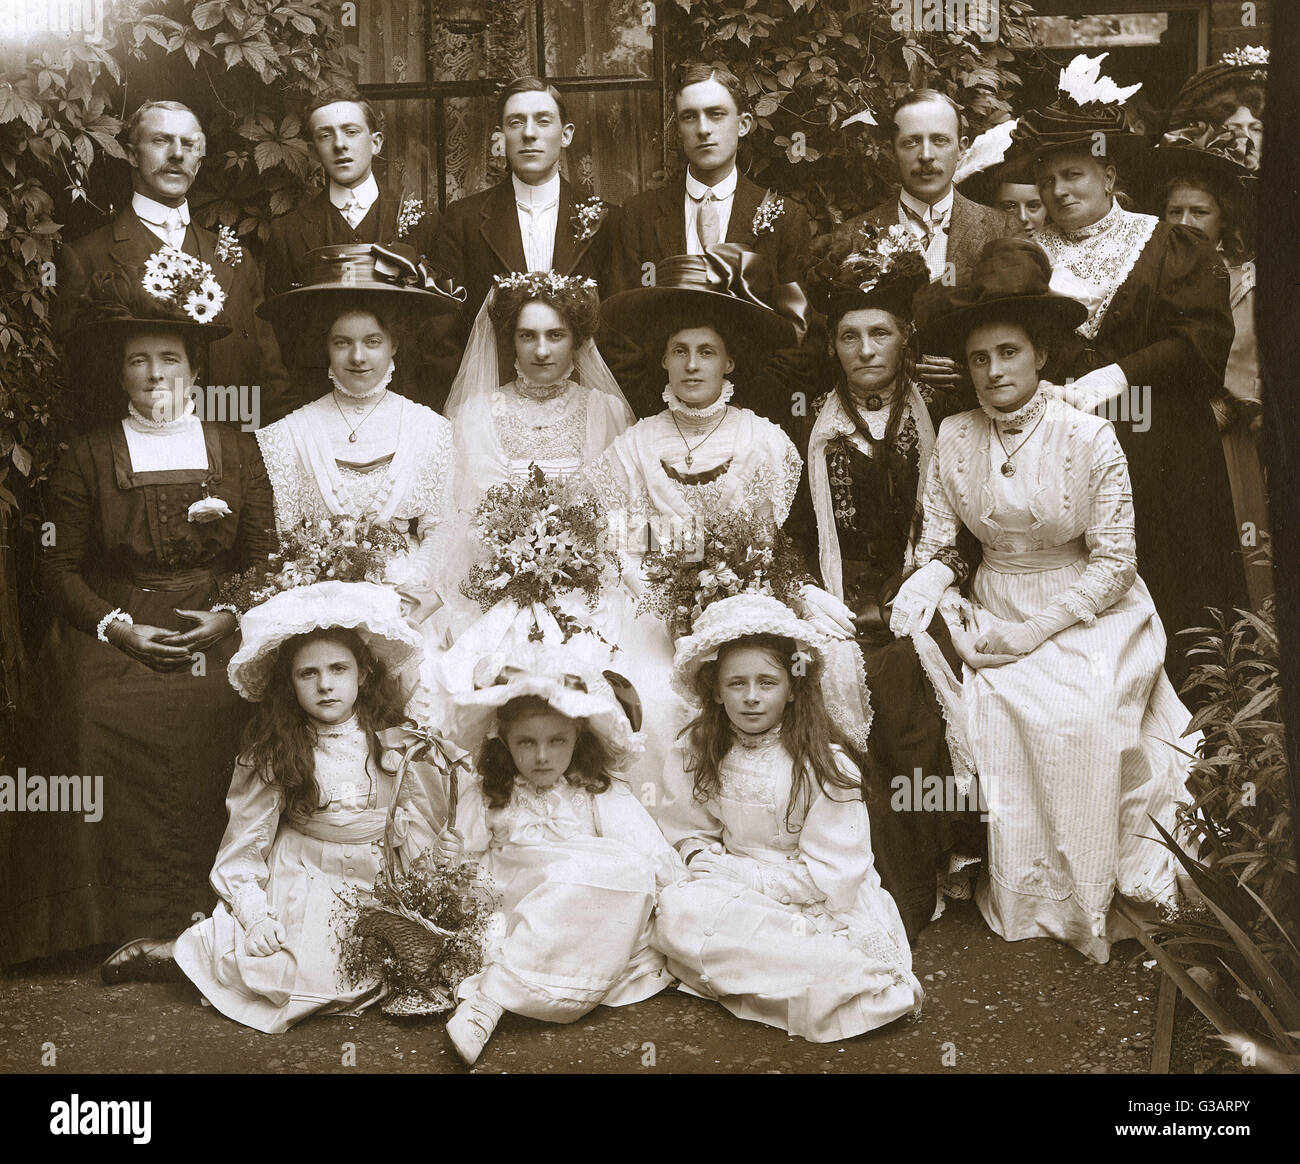 Wedding dress victorian stock photos wedding dress victorian stock a superb photograph of late victorian wedding party focusing on the bridal group all show junglespirit Image collections